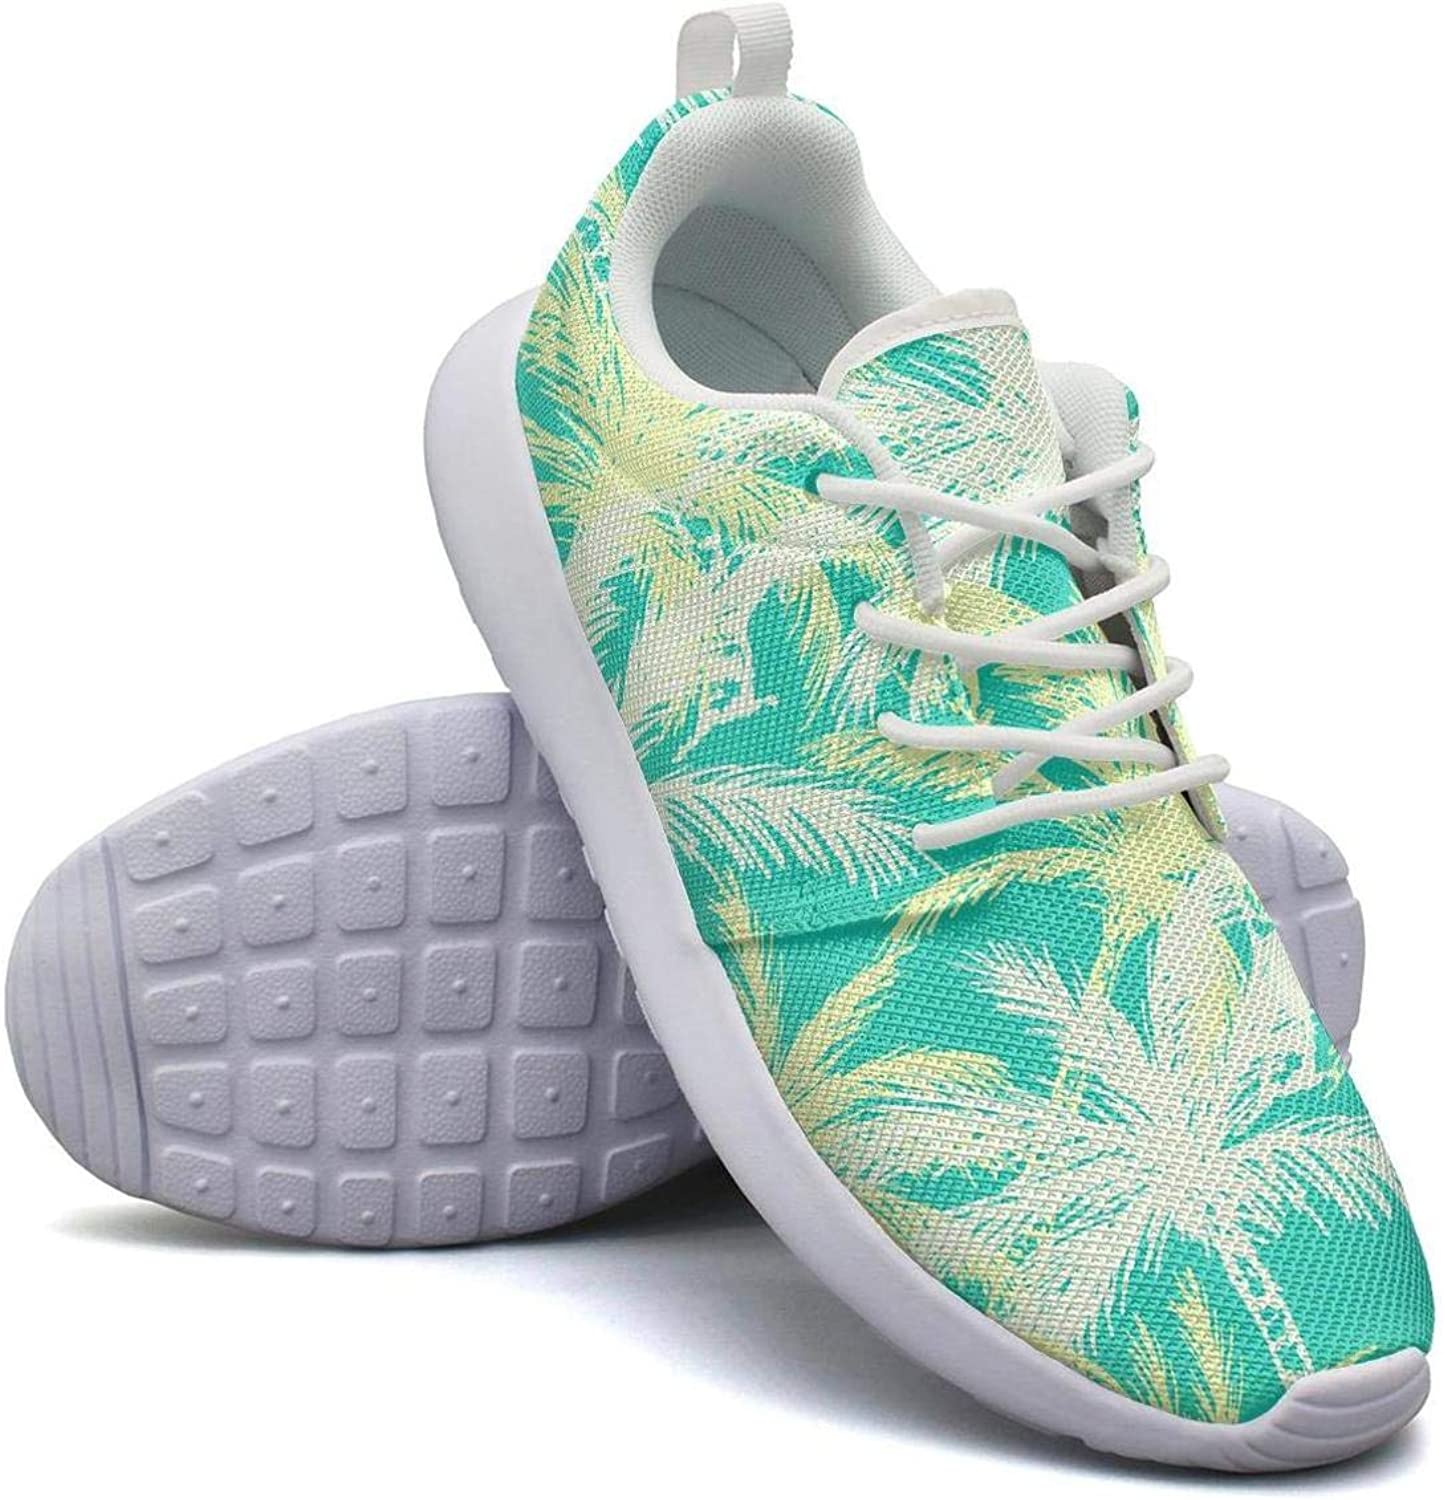 CHALi99 Comfort Womens Lightweight Mesh shoes Tropical Palm Leaves Sneakers Outdoor Lace-Up